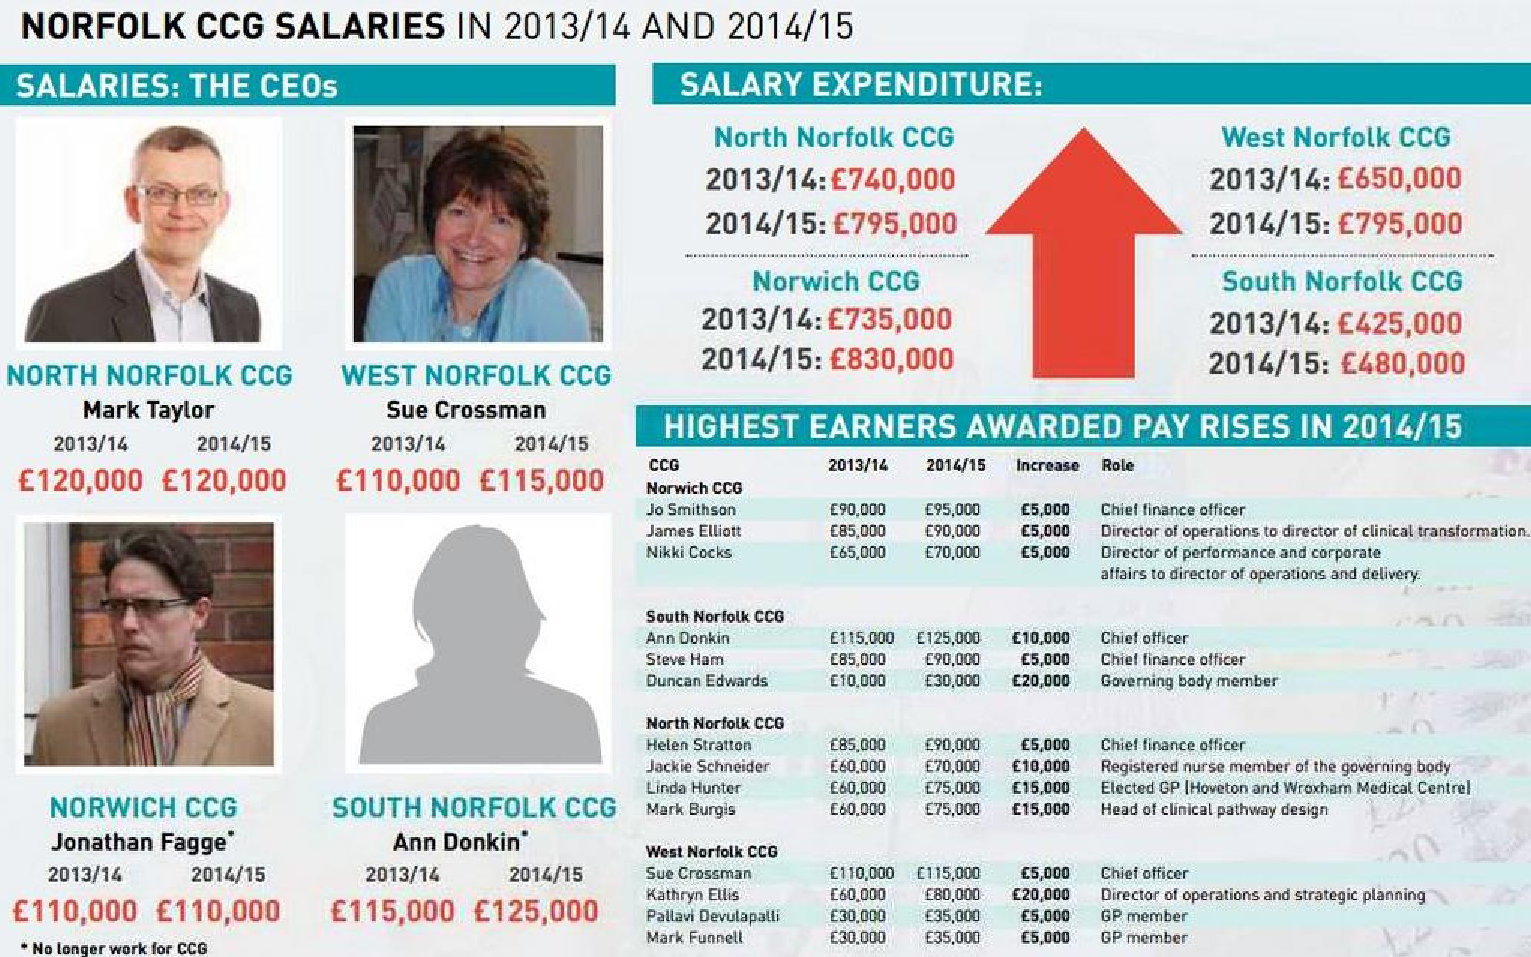 CCG Salaries Infographic from EDP